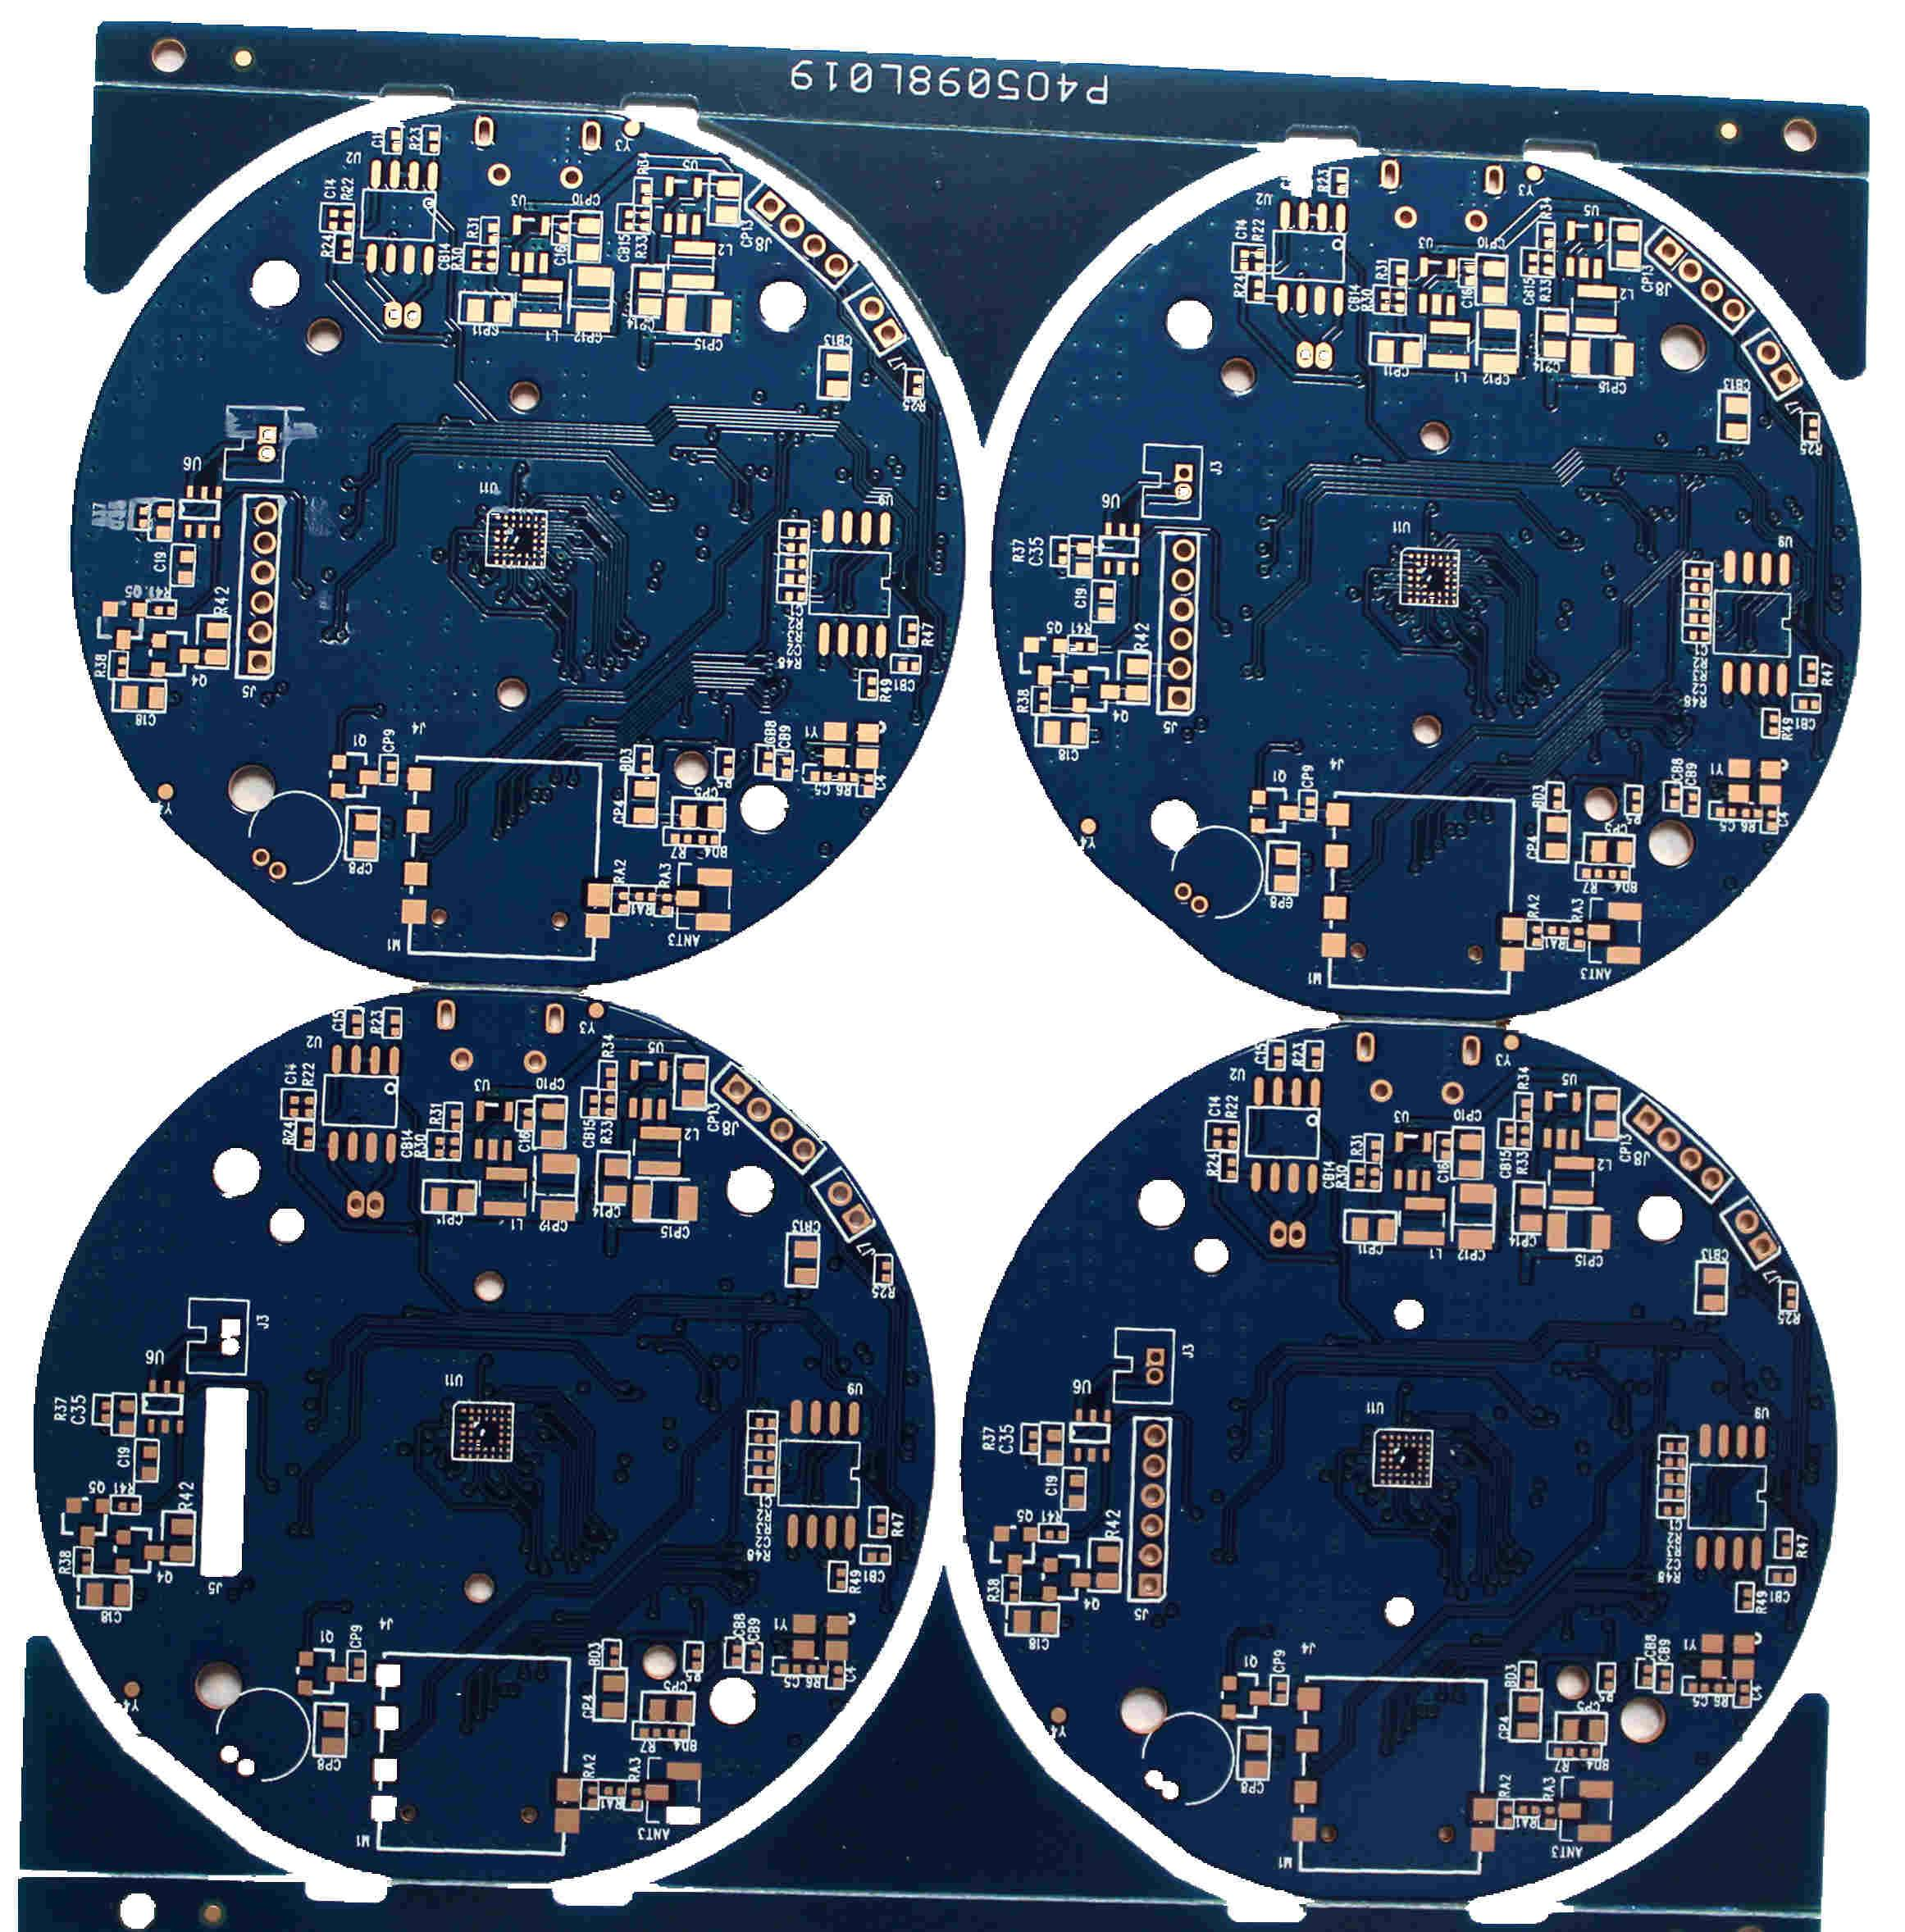 Alarm system Double-Sided PCB